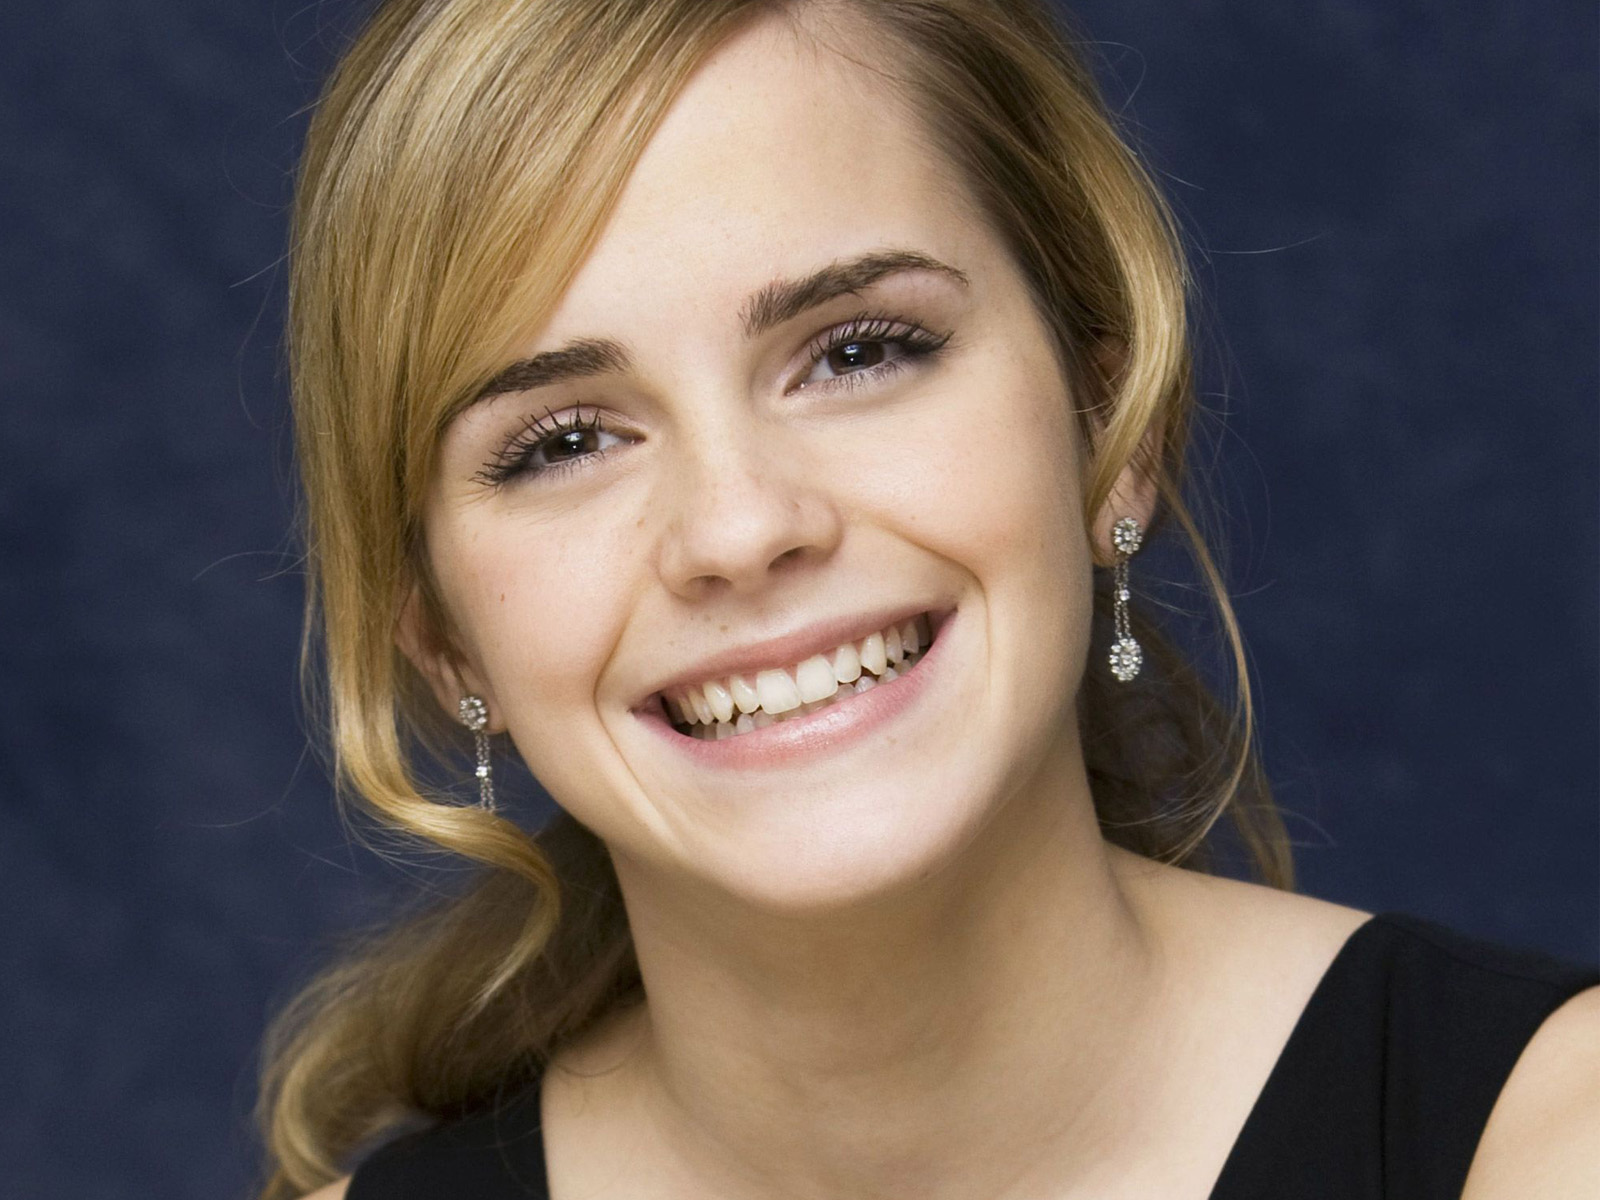 Smiley Emma